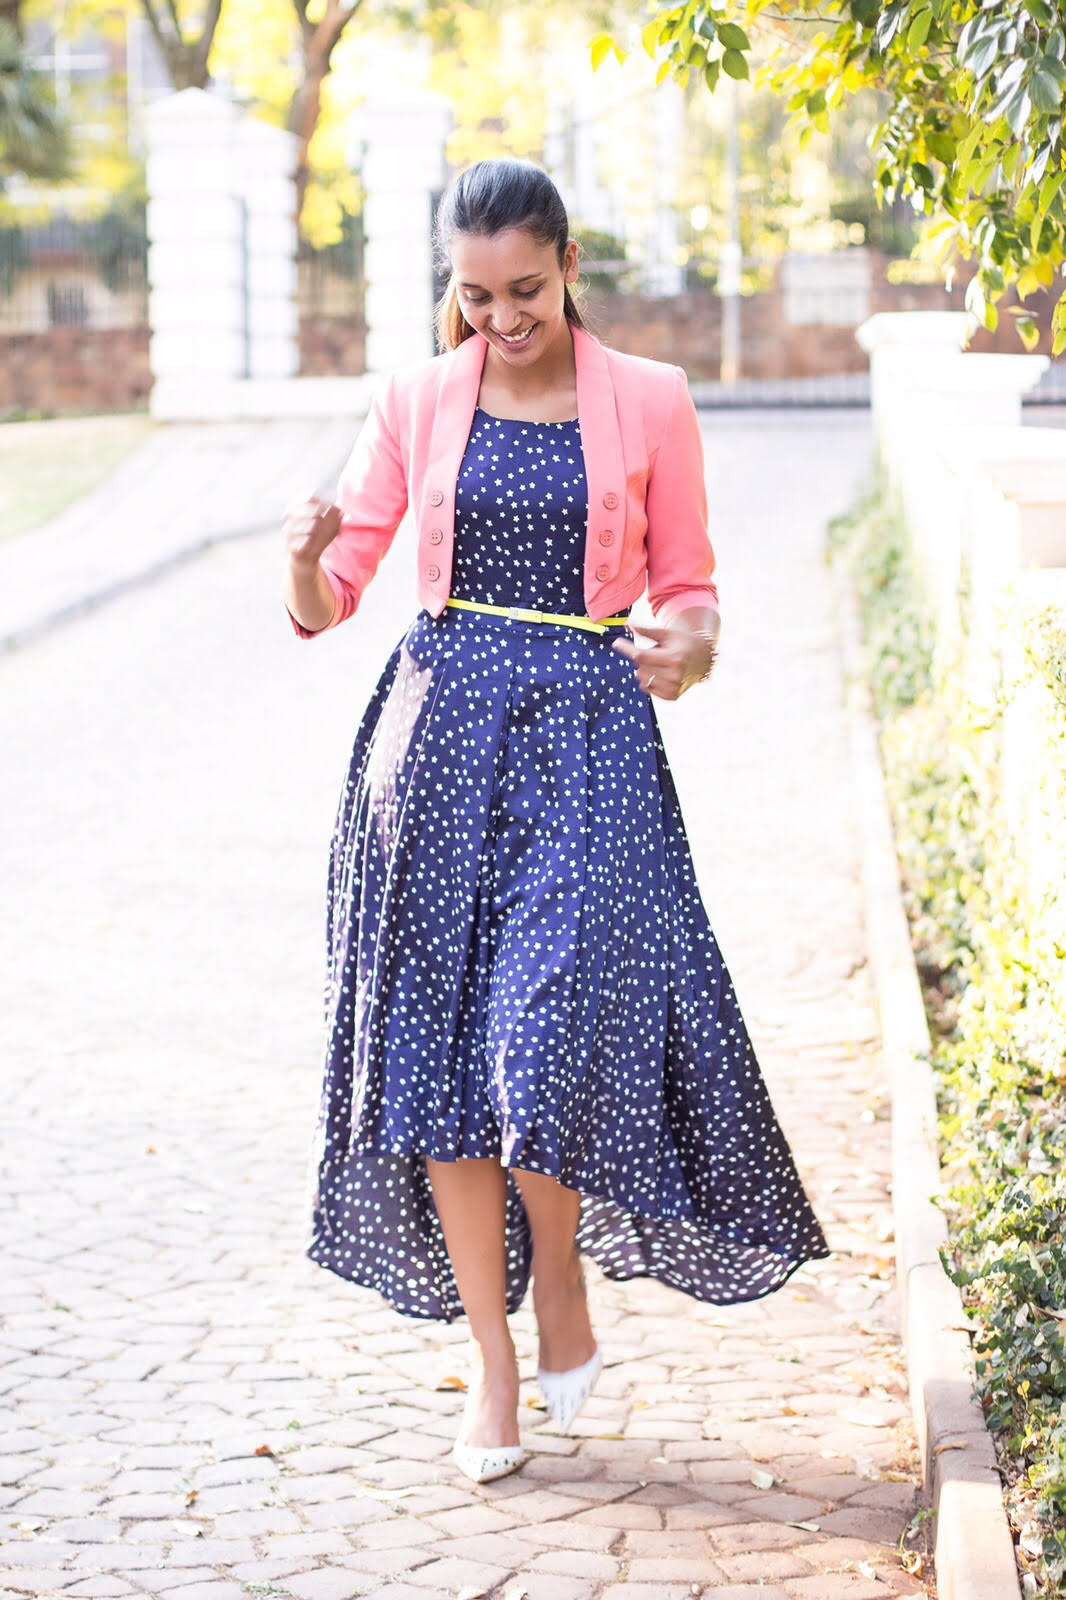 20 tips to dress modestly and stylishly this summer from 12 modest fashion bloggers downtown - Tips dressing ...